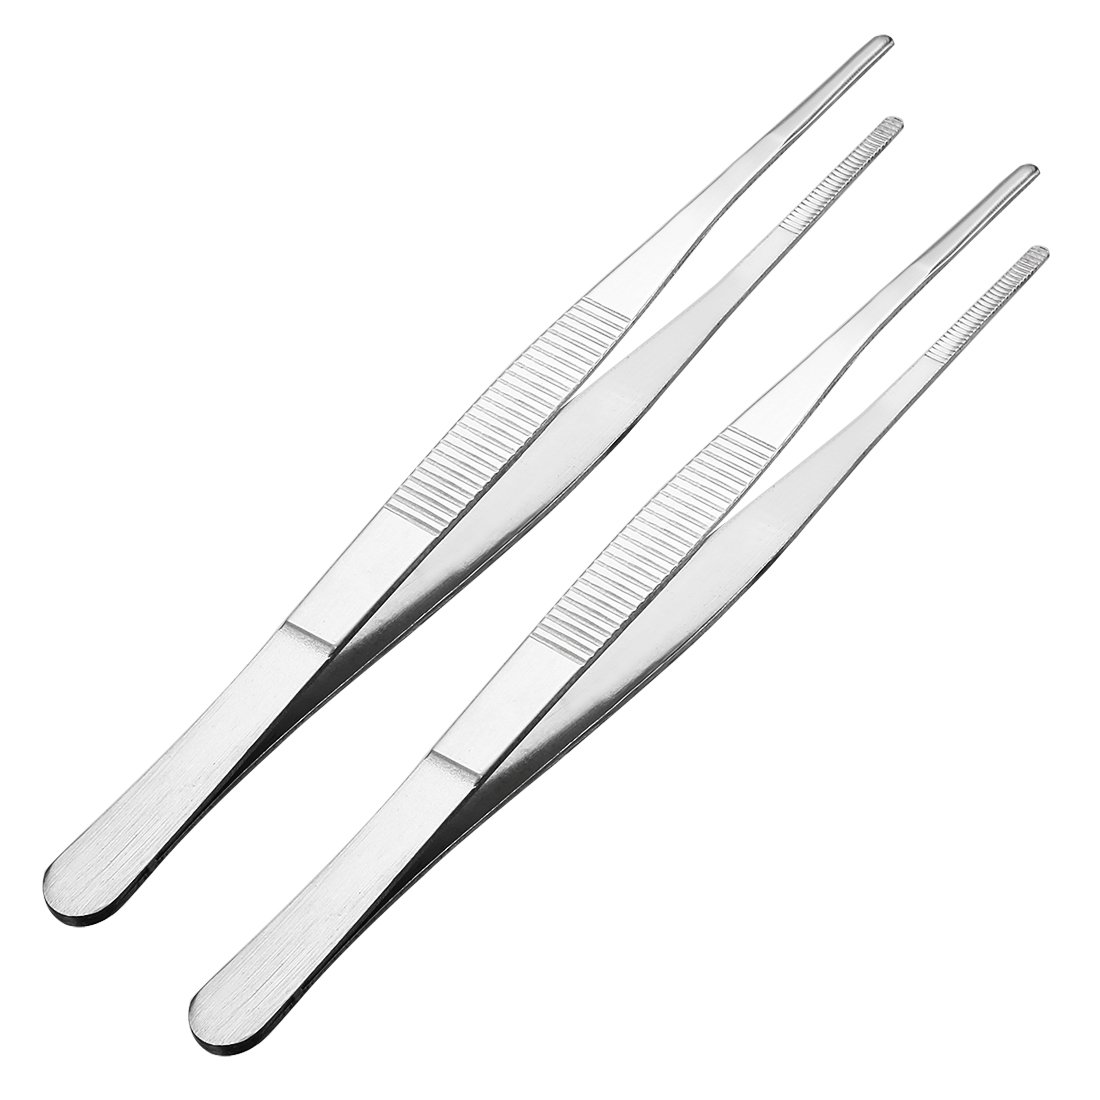 uxcell 3 Pcs Stainless Steel Straight Blunt Tweezers Serrated Tip, 10 inch a18041300ux0059